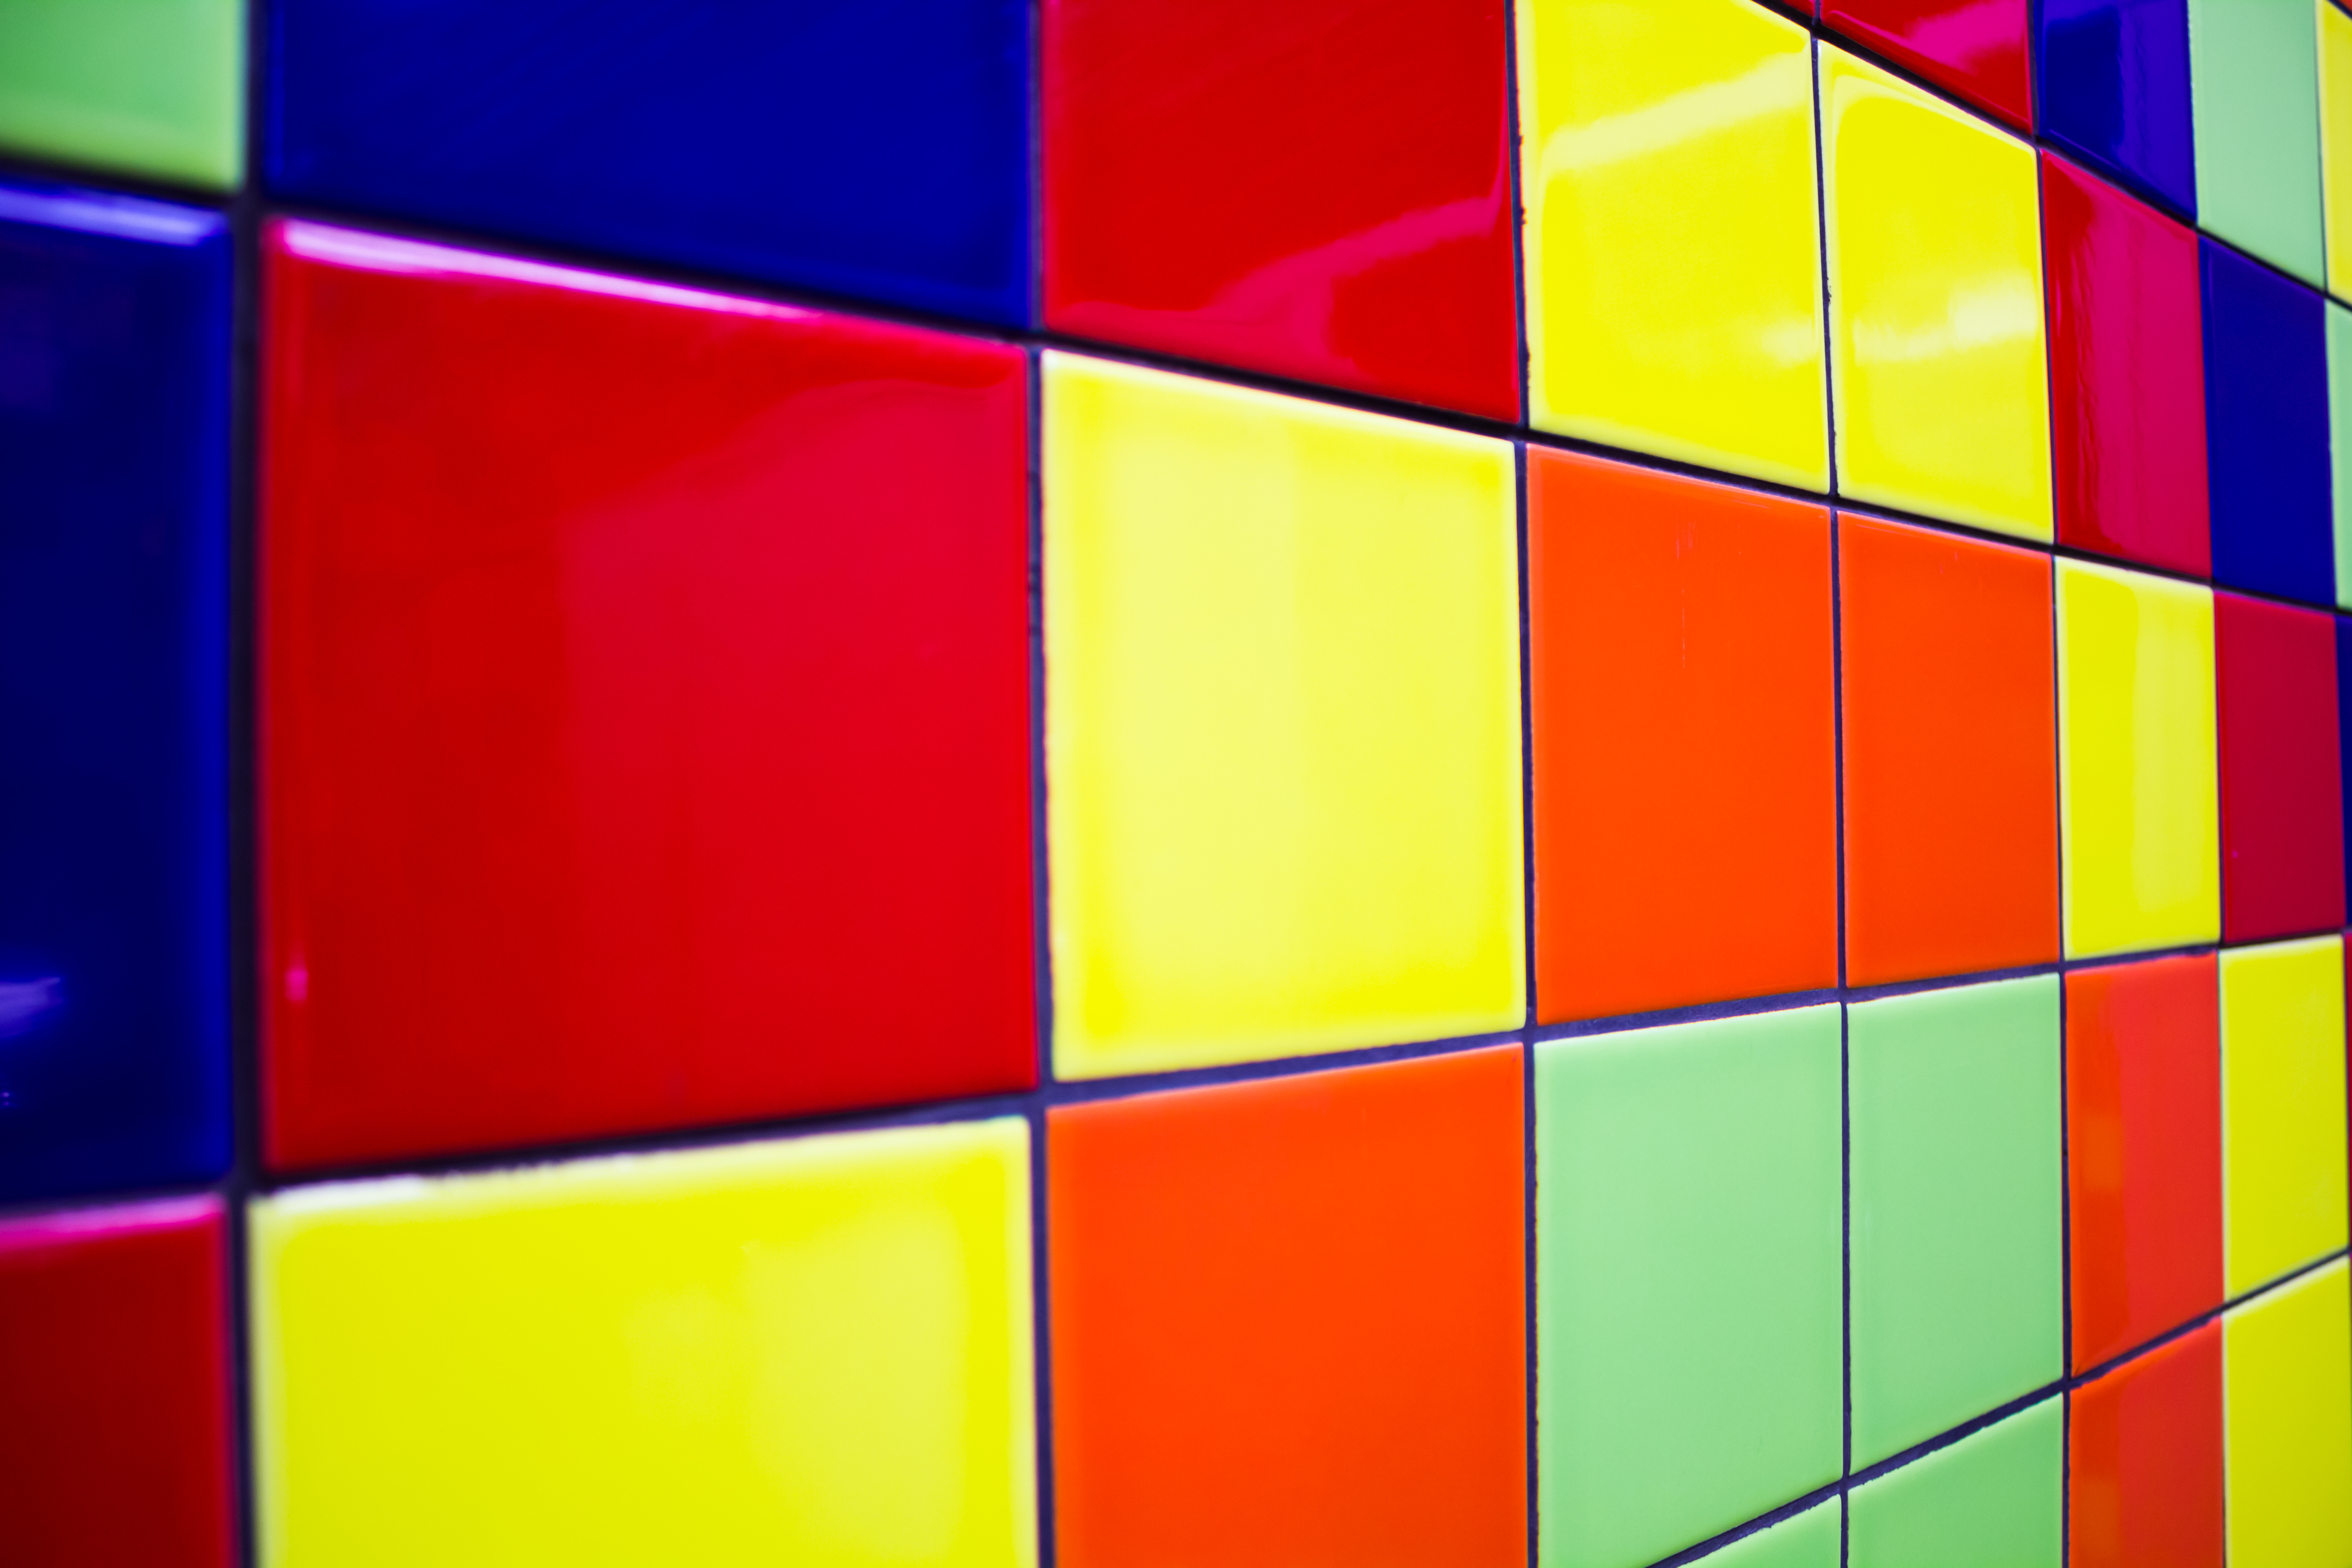 Very nice new multi-colored tiles with a lot of colors